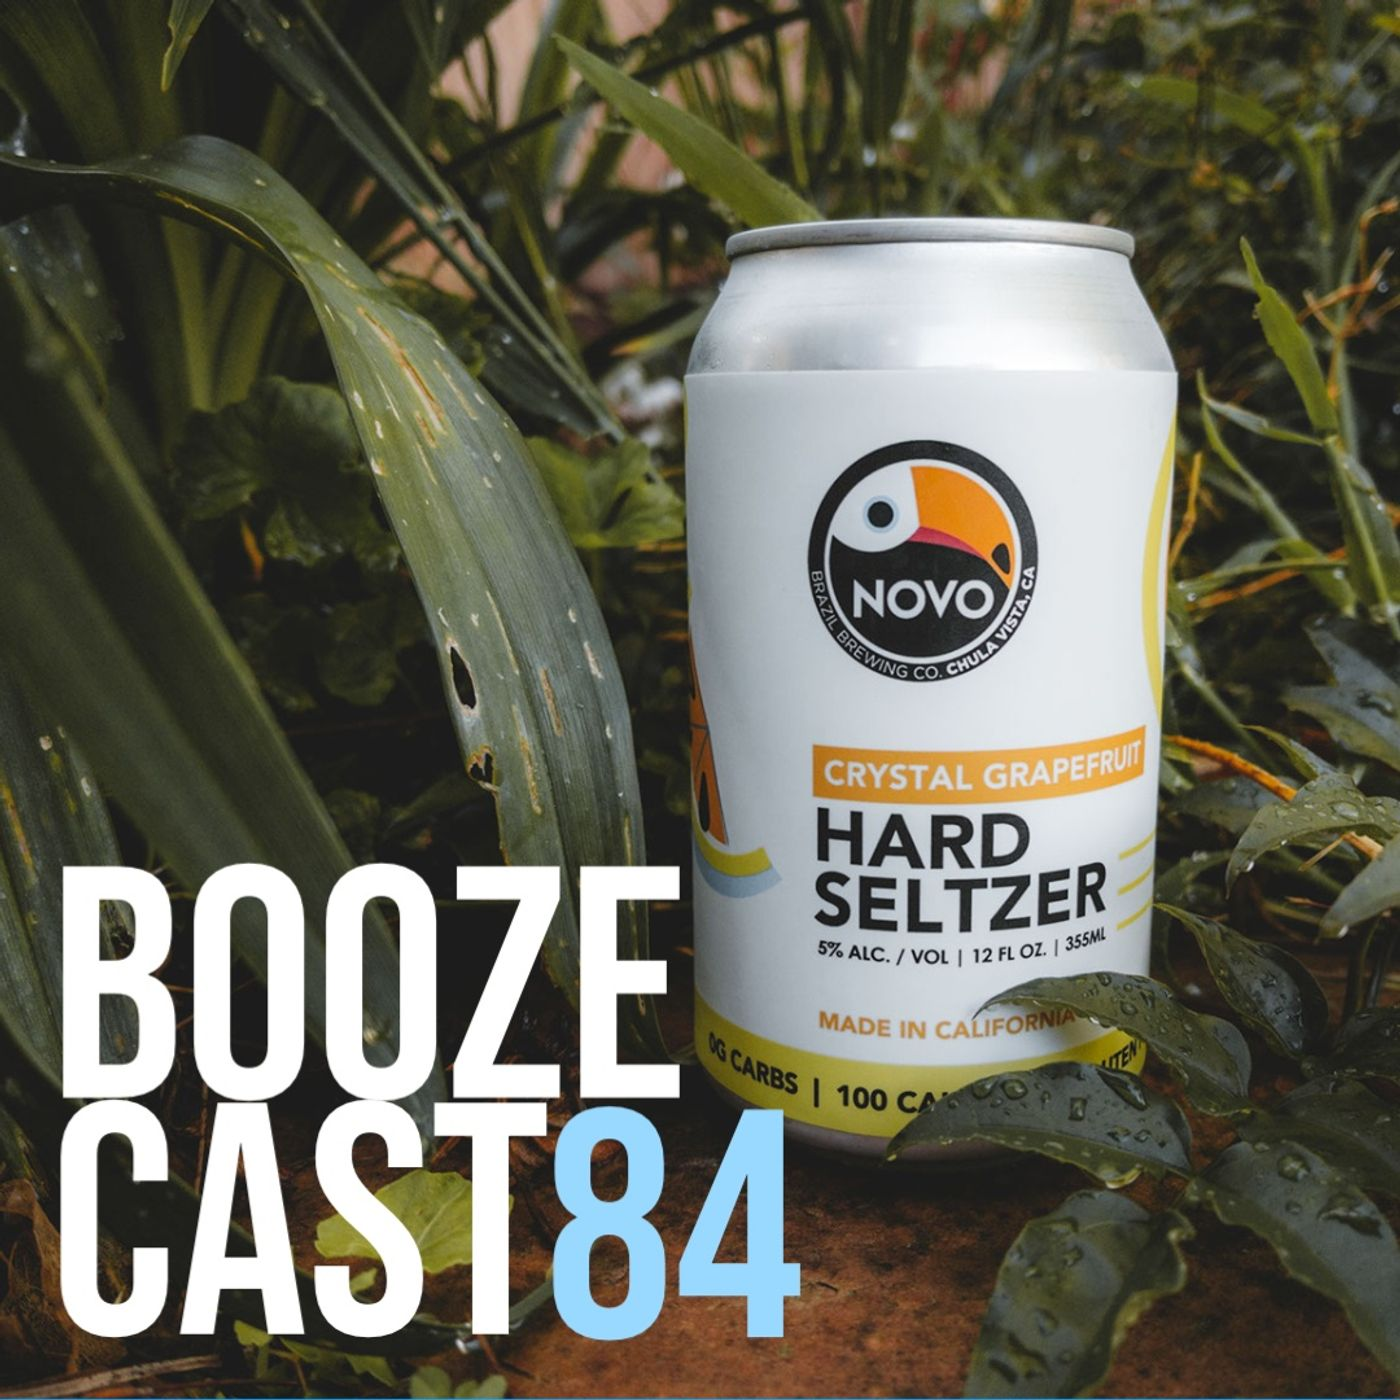 Draught84: Craft Selzters, Easy Cinco Margarita Recipes, 2020's Biggest Breweries, and Craft Beer Lodging